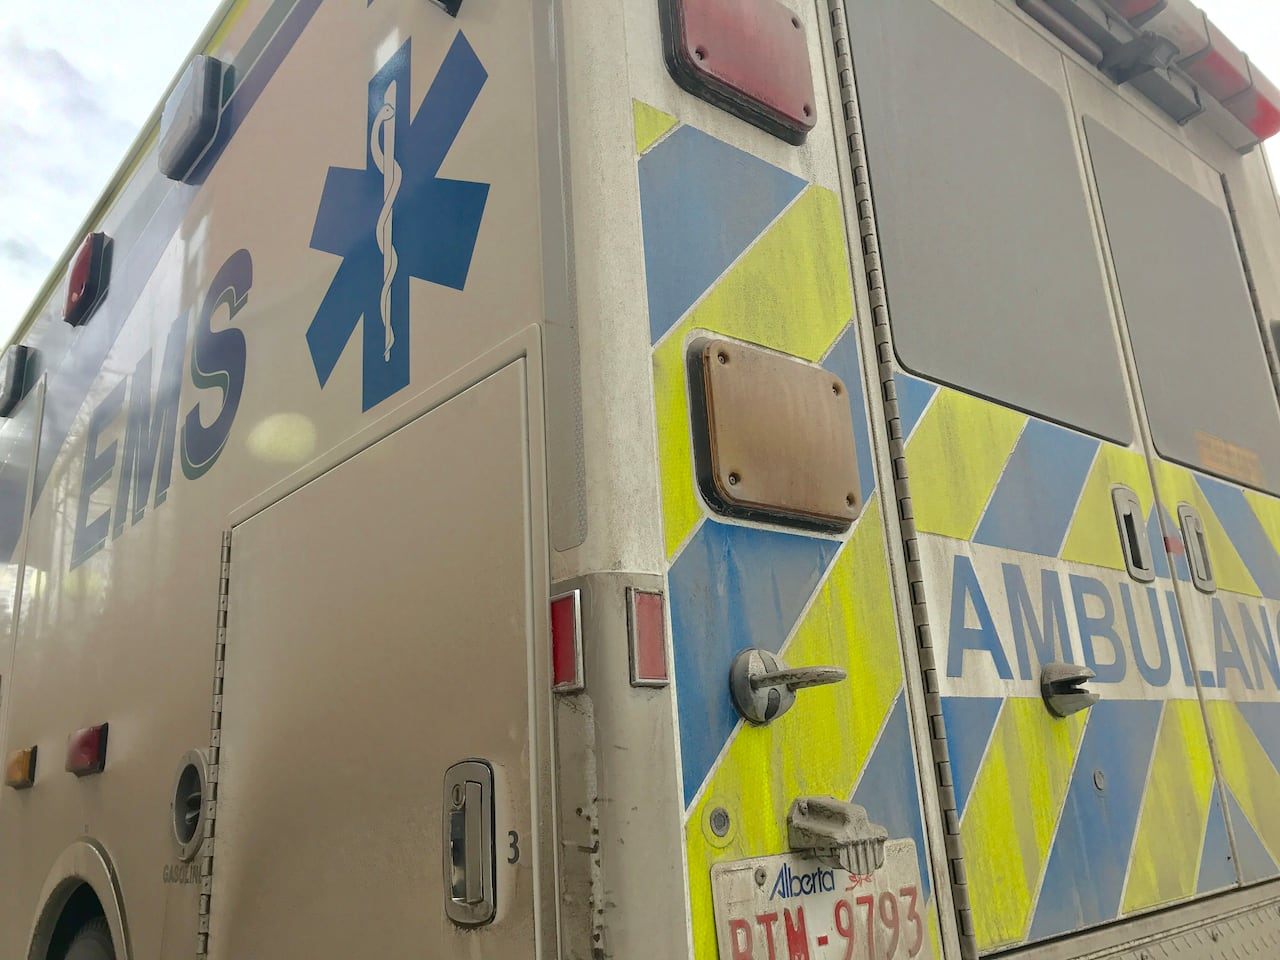 It S Destroying Me As A Person Calgary Paramedics Say Job Is Taking Toll On Mental Health Cbc News